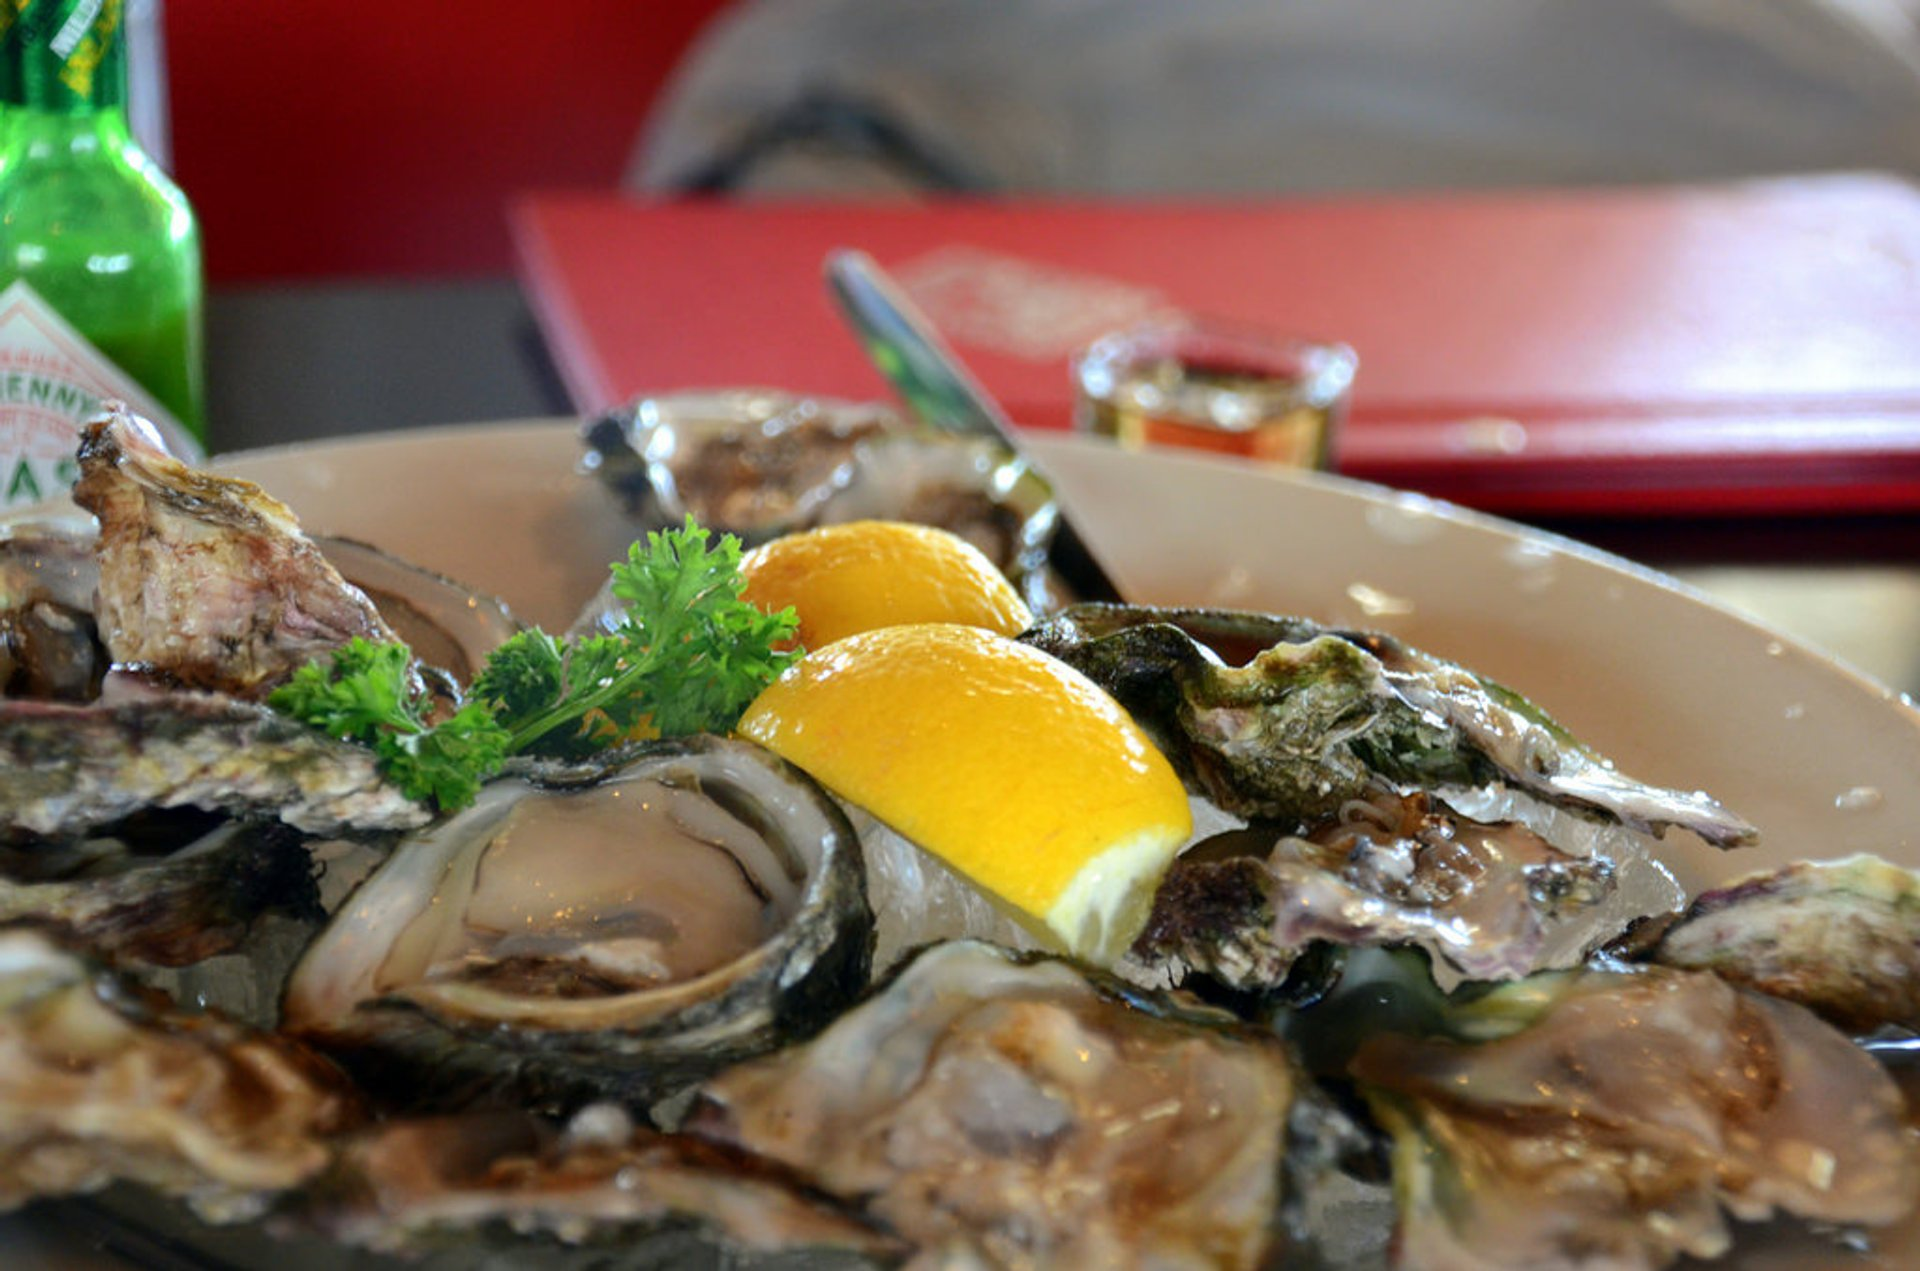 Knysna Oysters in South Africa 2020 - Best Time